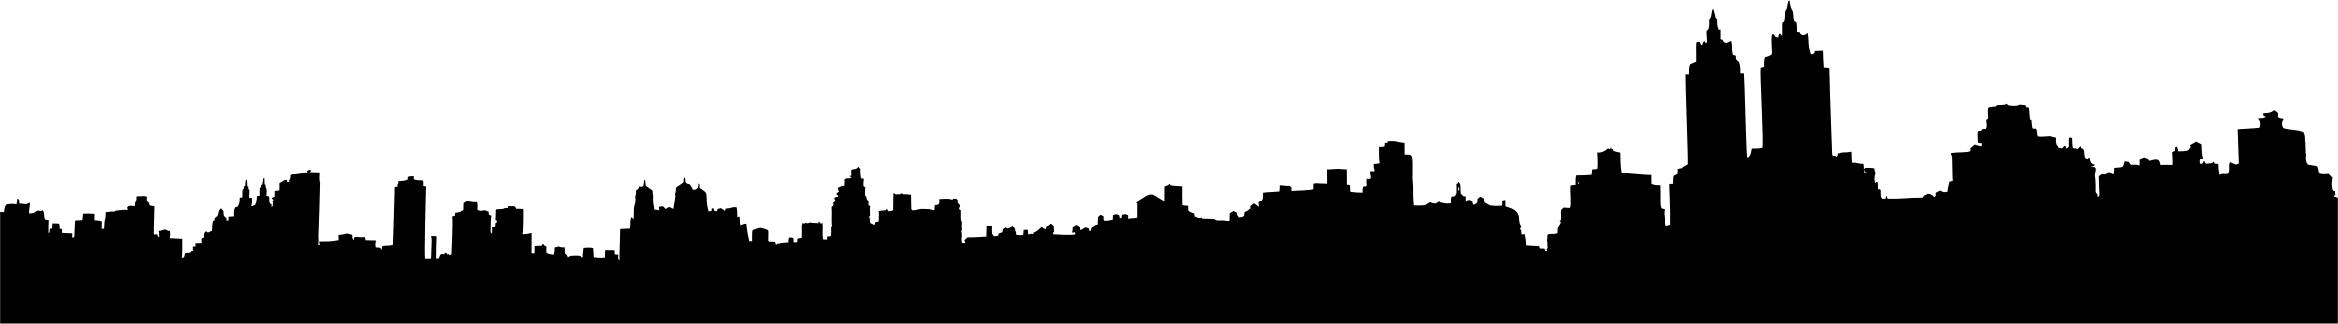 2338x324 New York Central Park Skyline Silhouette Icons Png